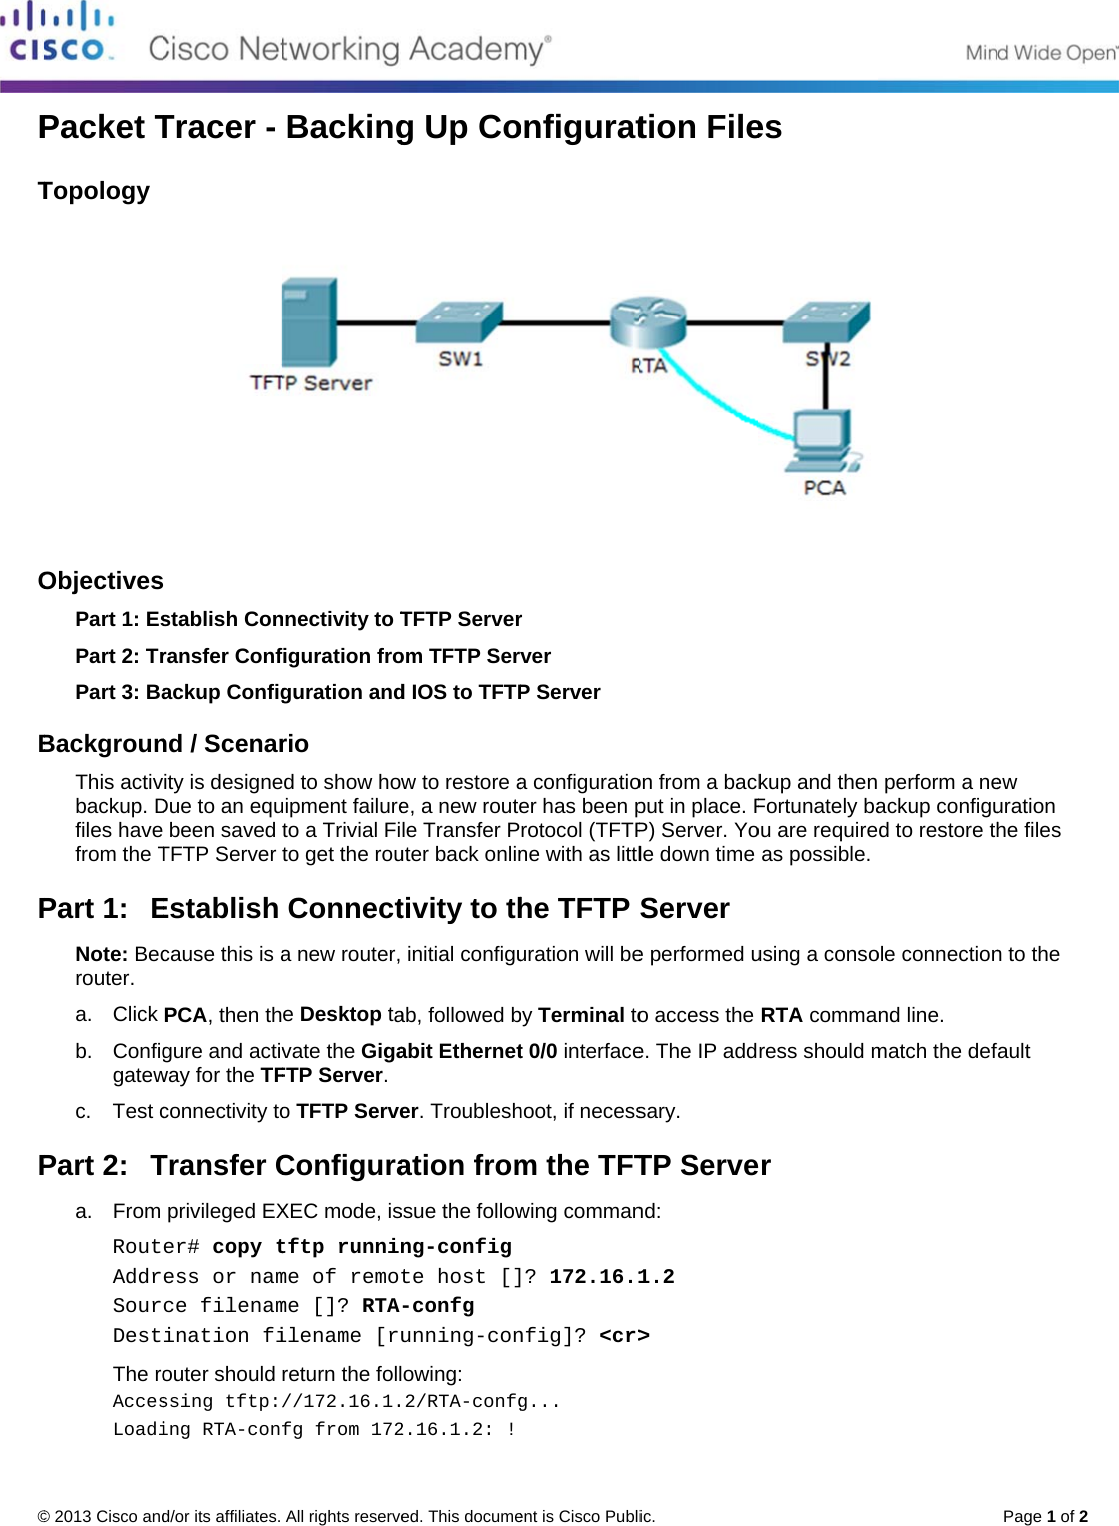 10 3 1 8 packet tracer backing up configuration files instructions